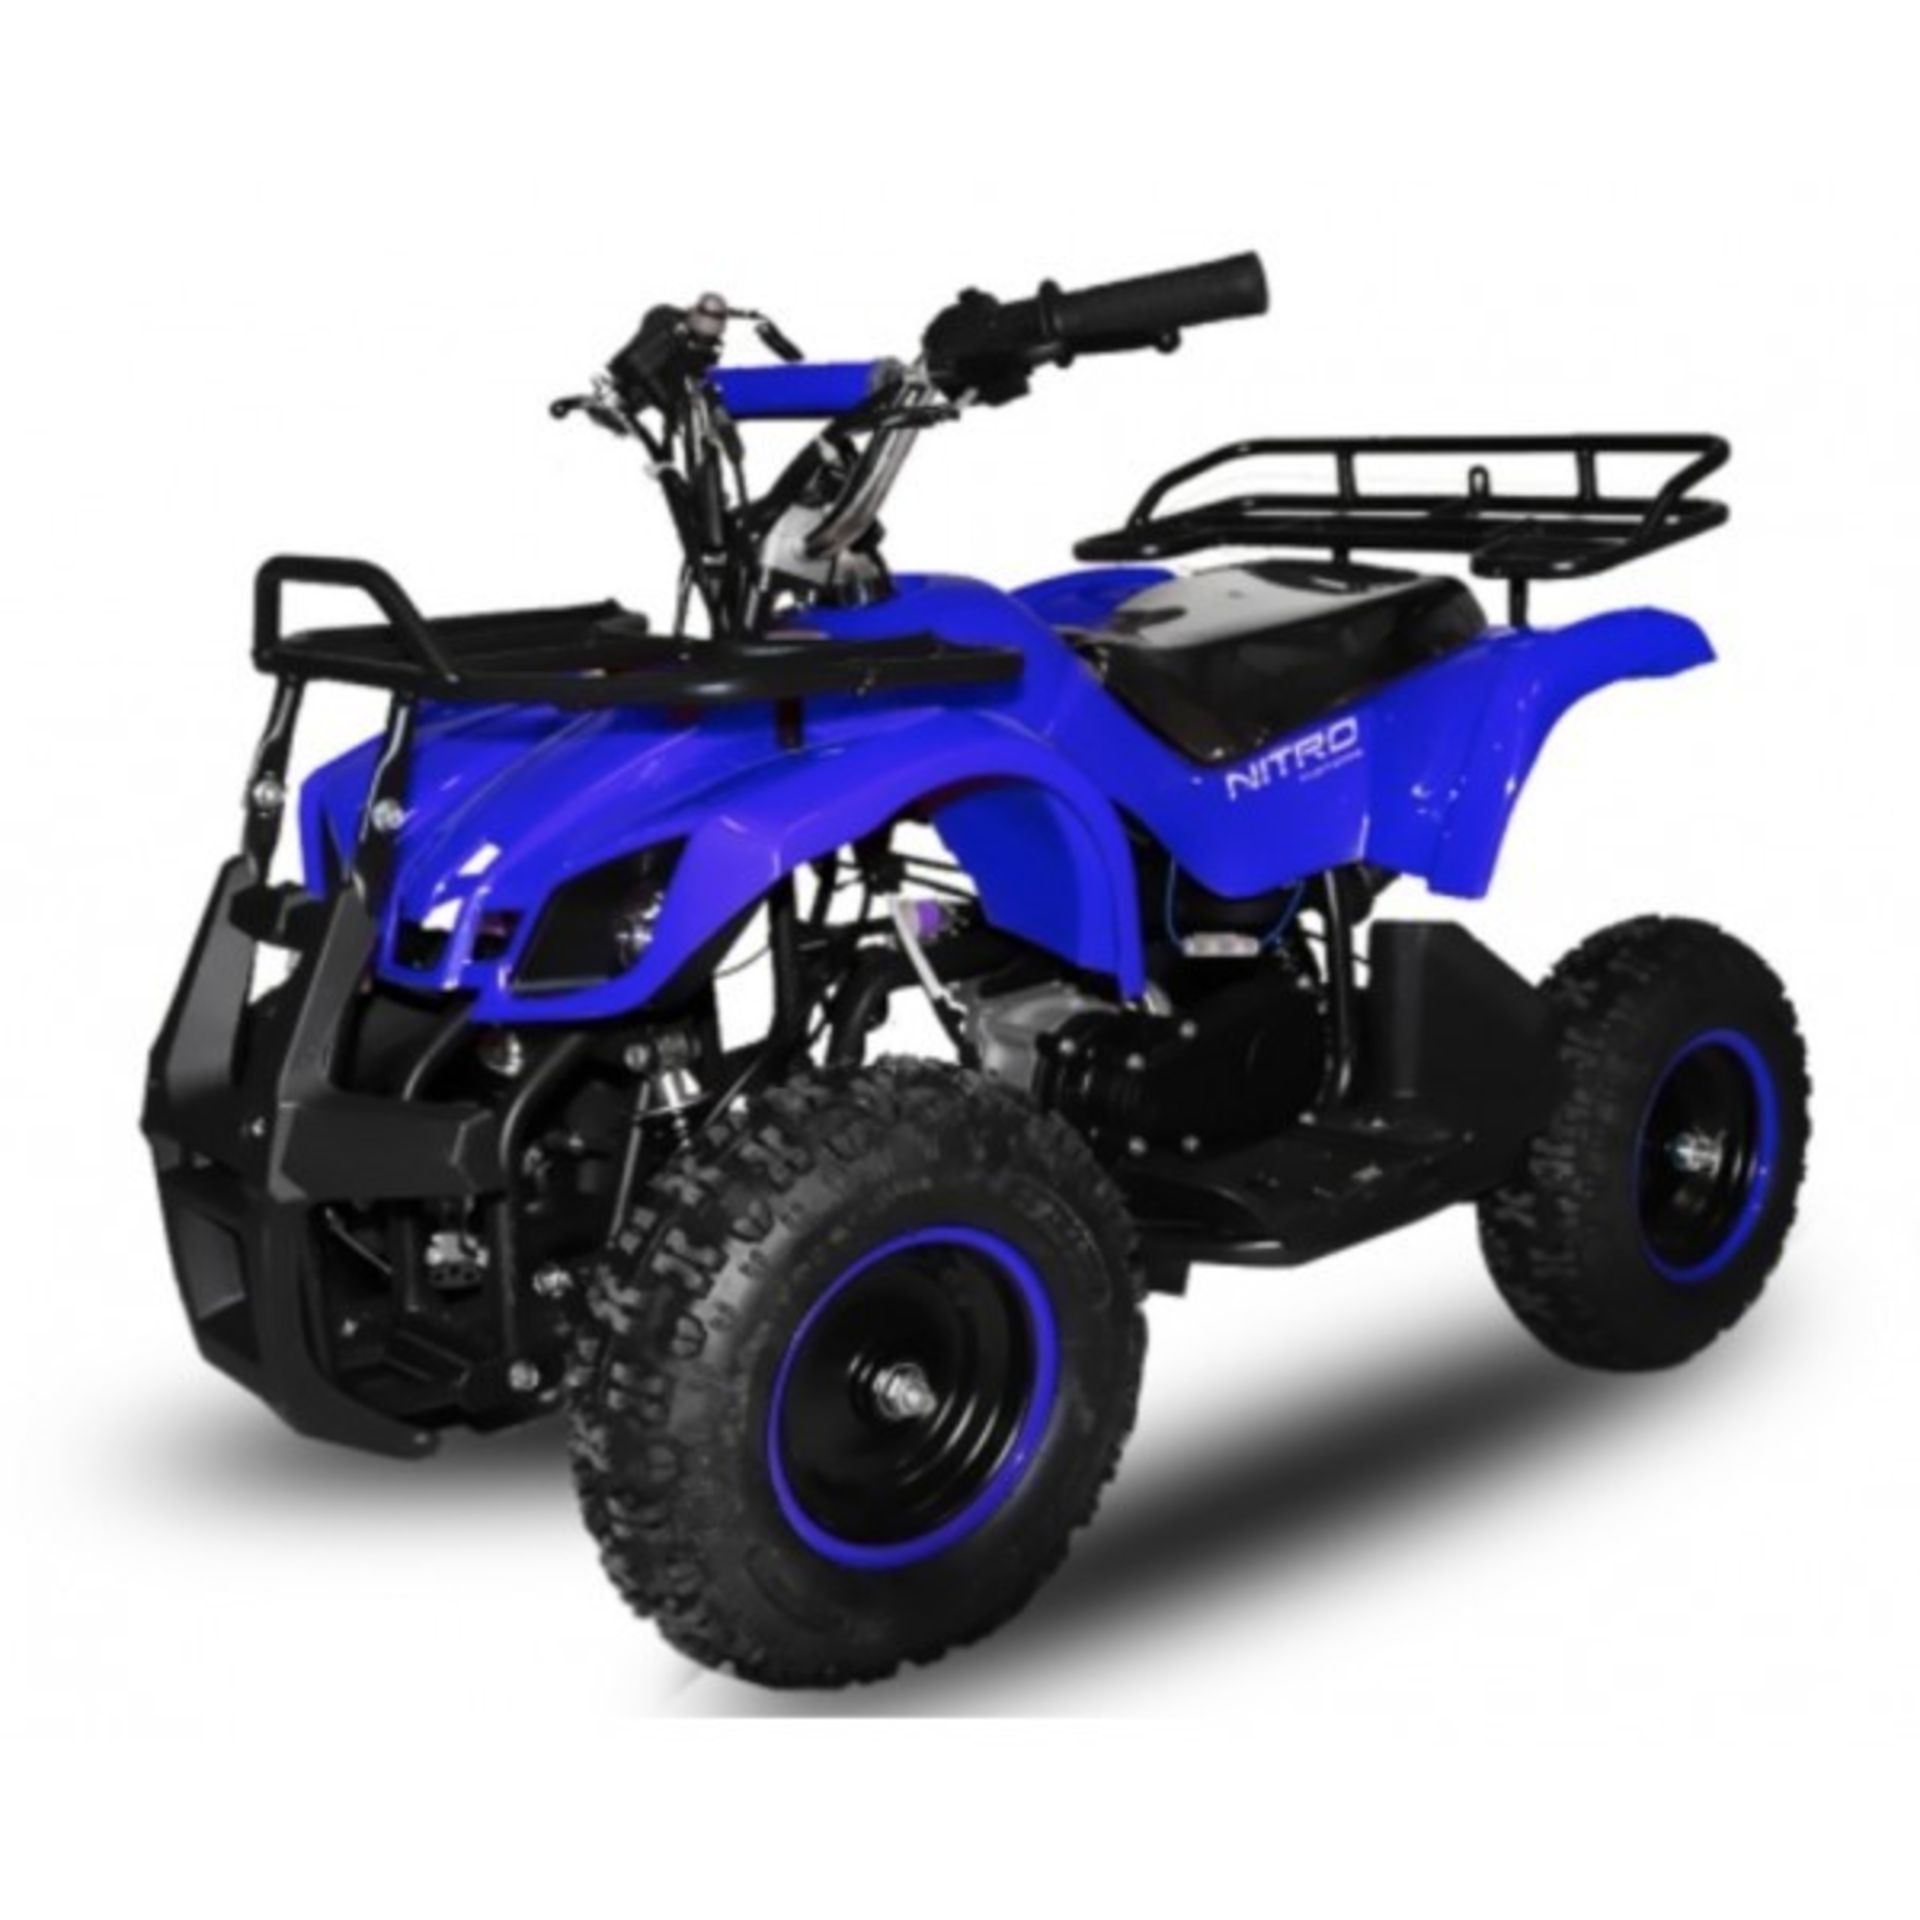 Lot 59023 - V Brand New 50cc Mini Quad Bike FRM - Colours May Vary - Front & Rear Frames - Picture May Vary From